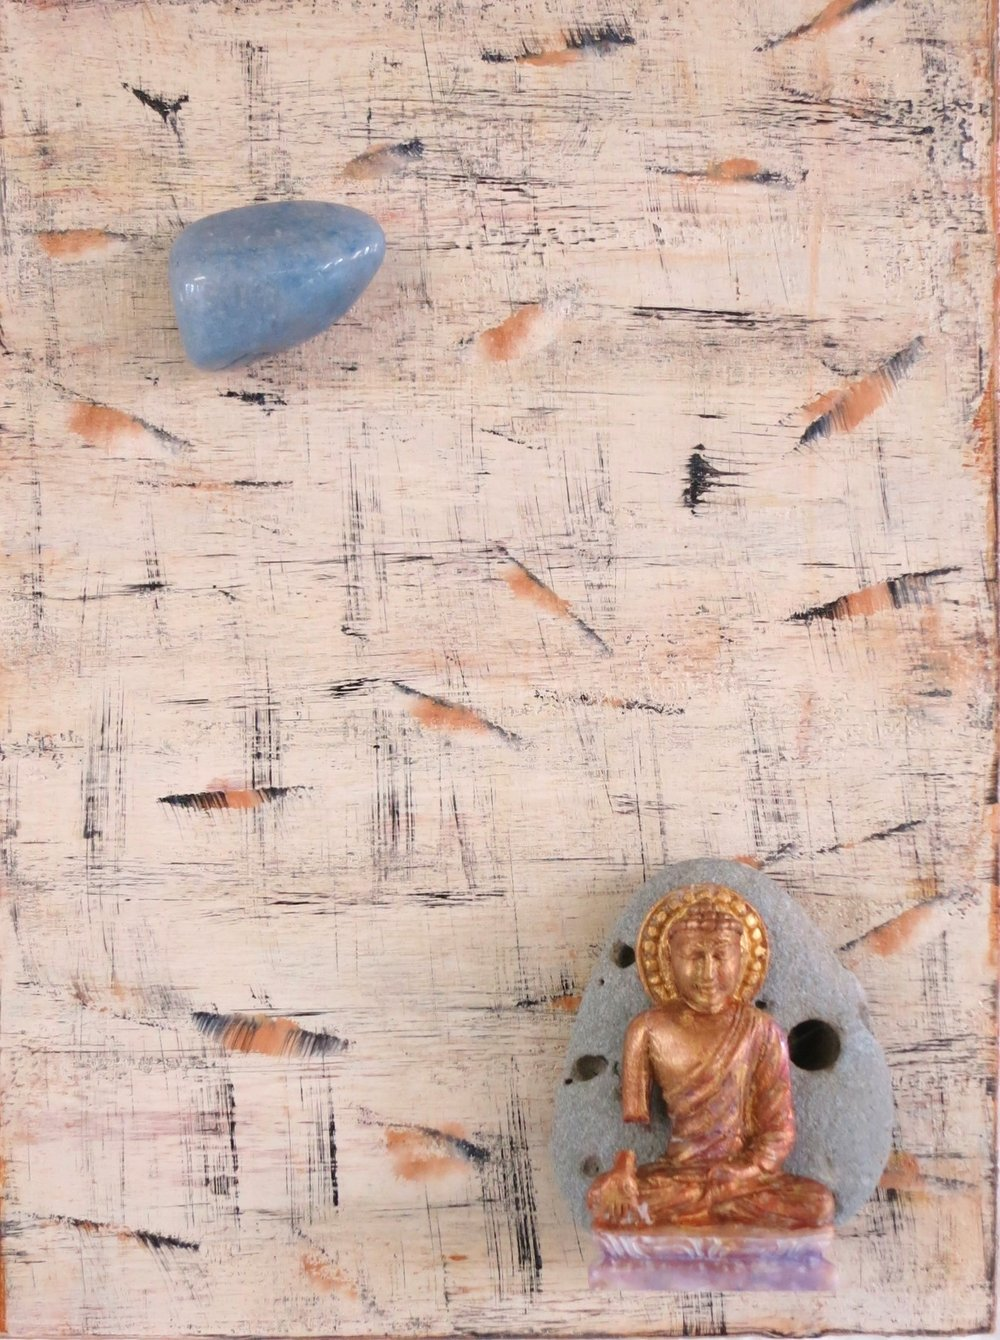 """External Chaos, Internal Calm"", 2016  Buddha with Blue Lace Agate Acrylic, resin Buddha, Costa Rican sand stone on   6"" x 8"" on cradled wood panel Blue Lace Agate is a gentle, calming and protective stone that instills tranquility and grace."